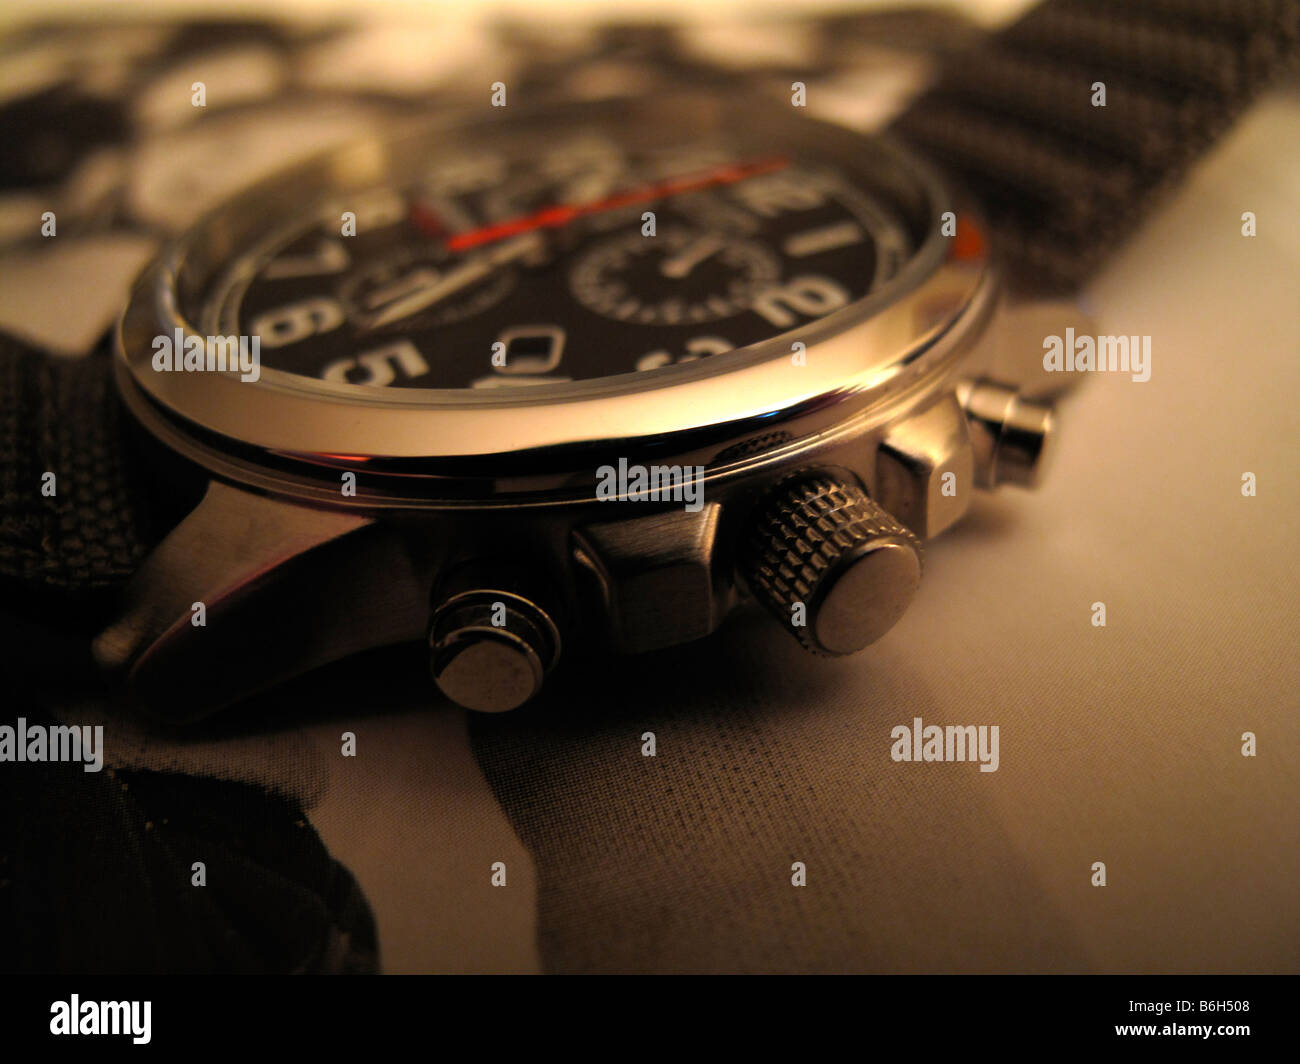 Close up of man's chronograph watch. Stock Photo